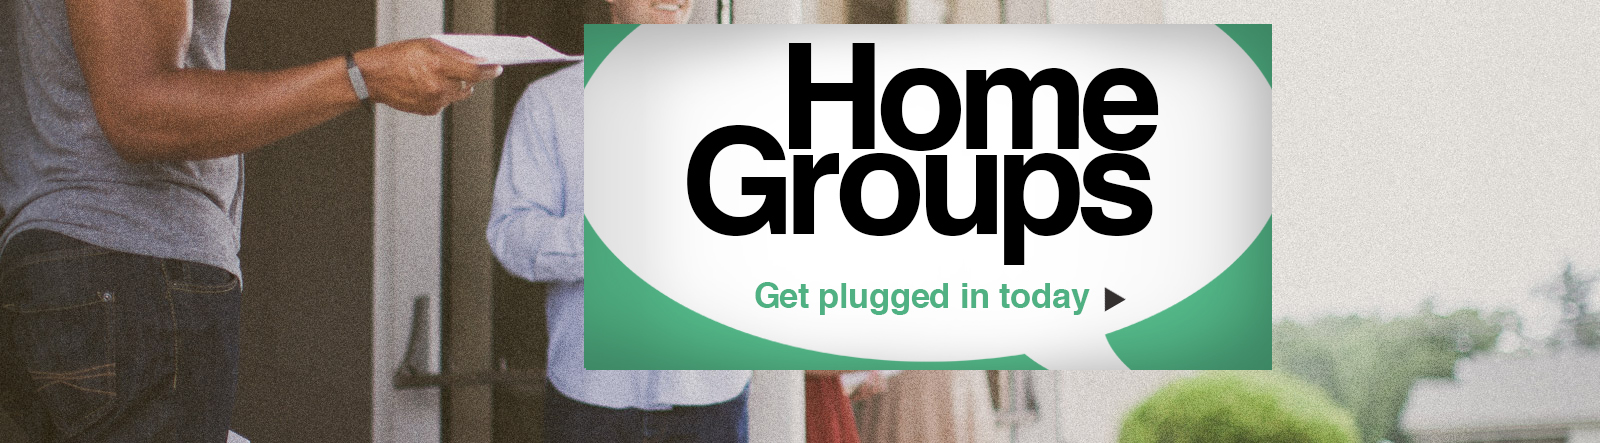 Get plugged into a HomeGroup today